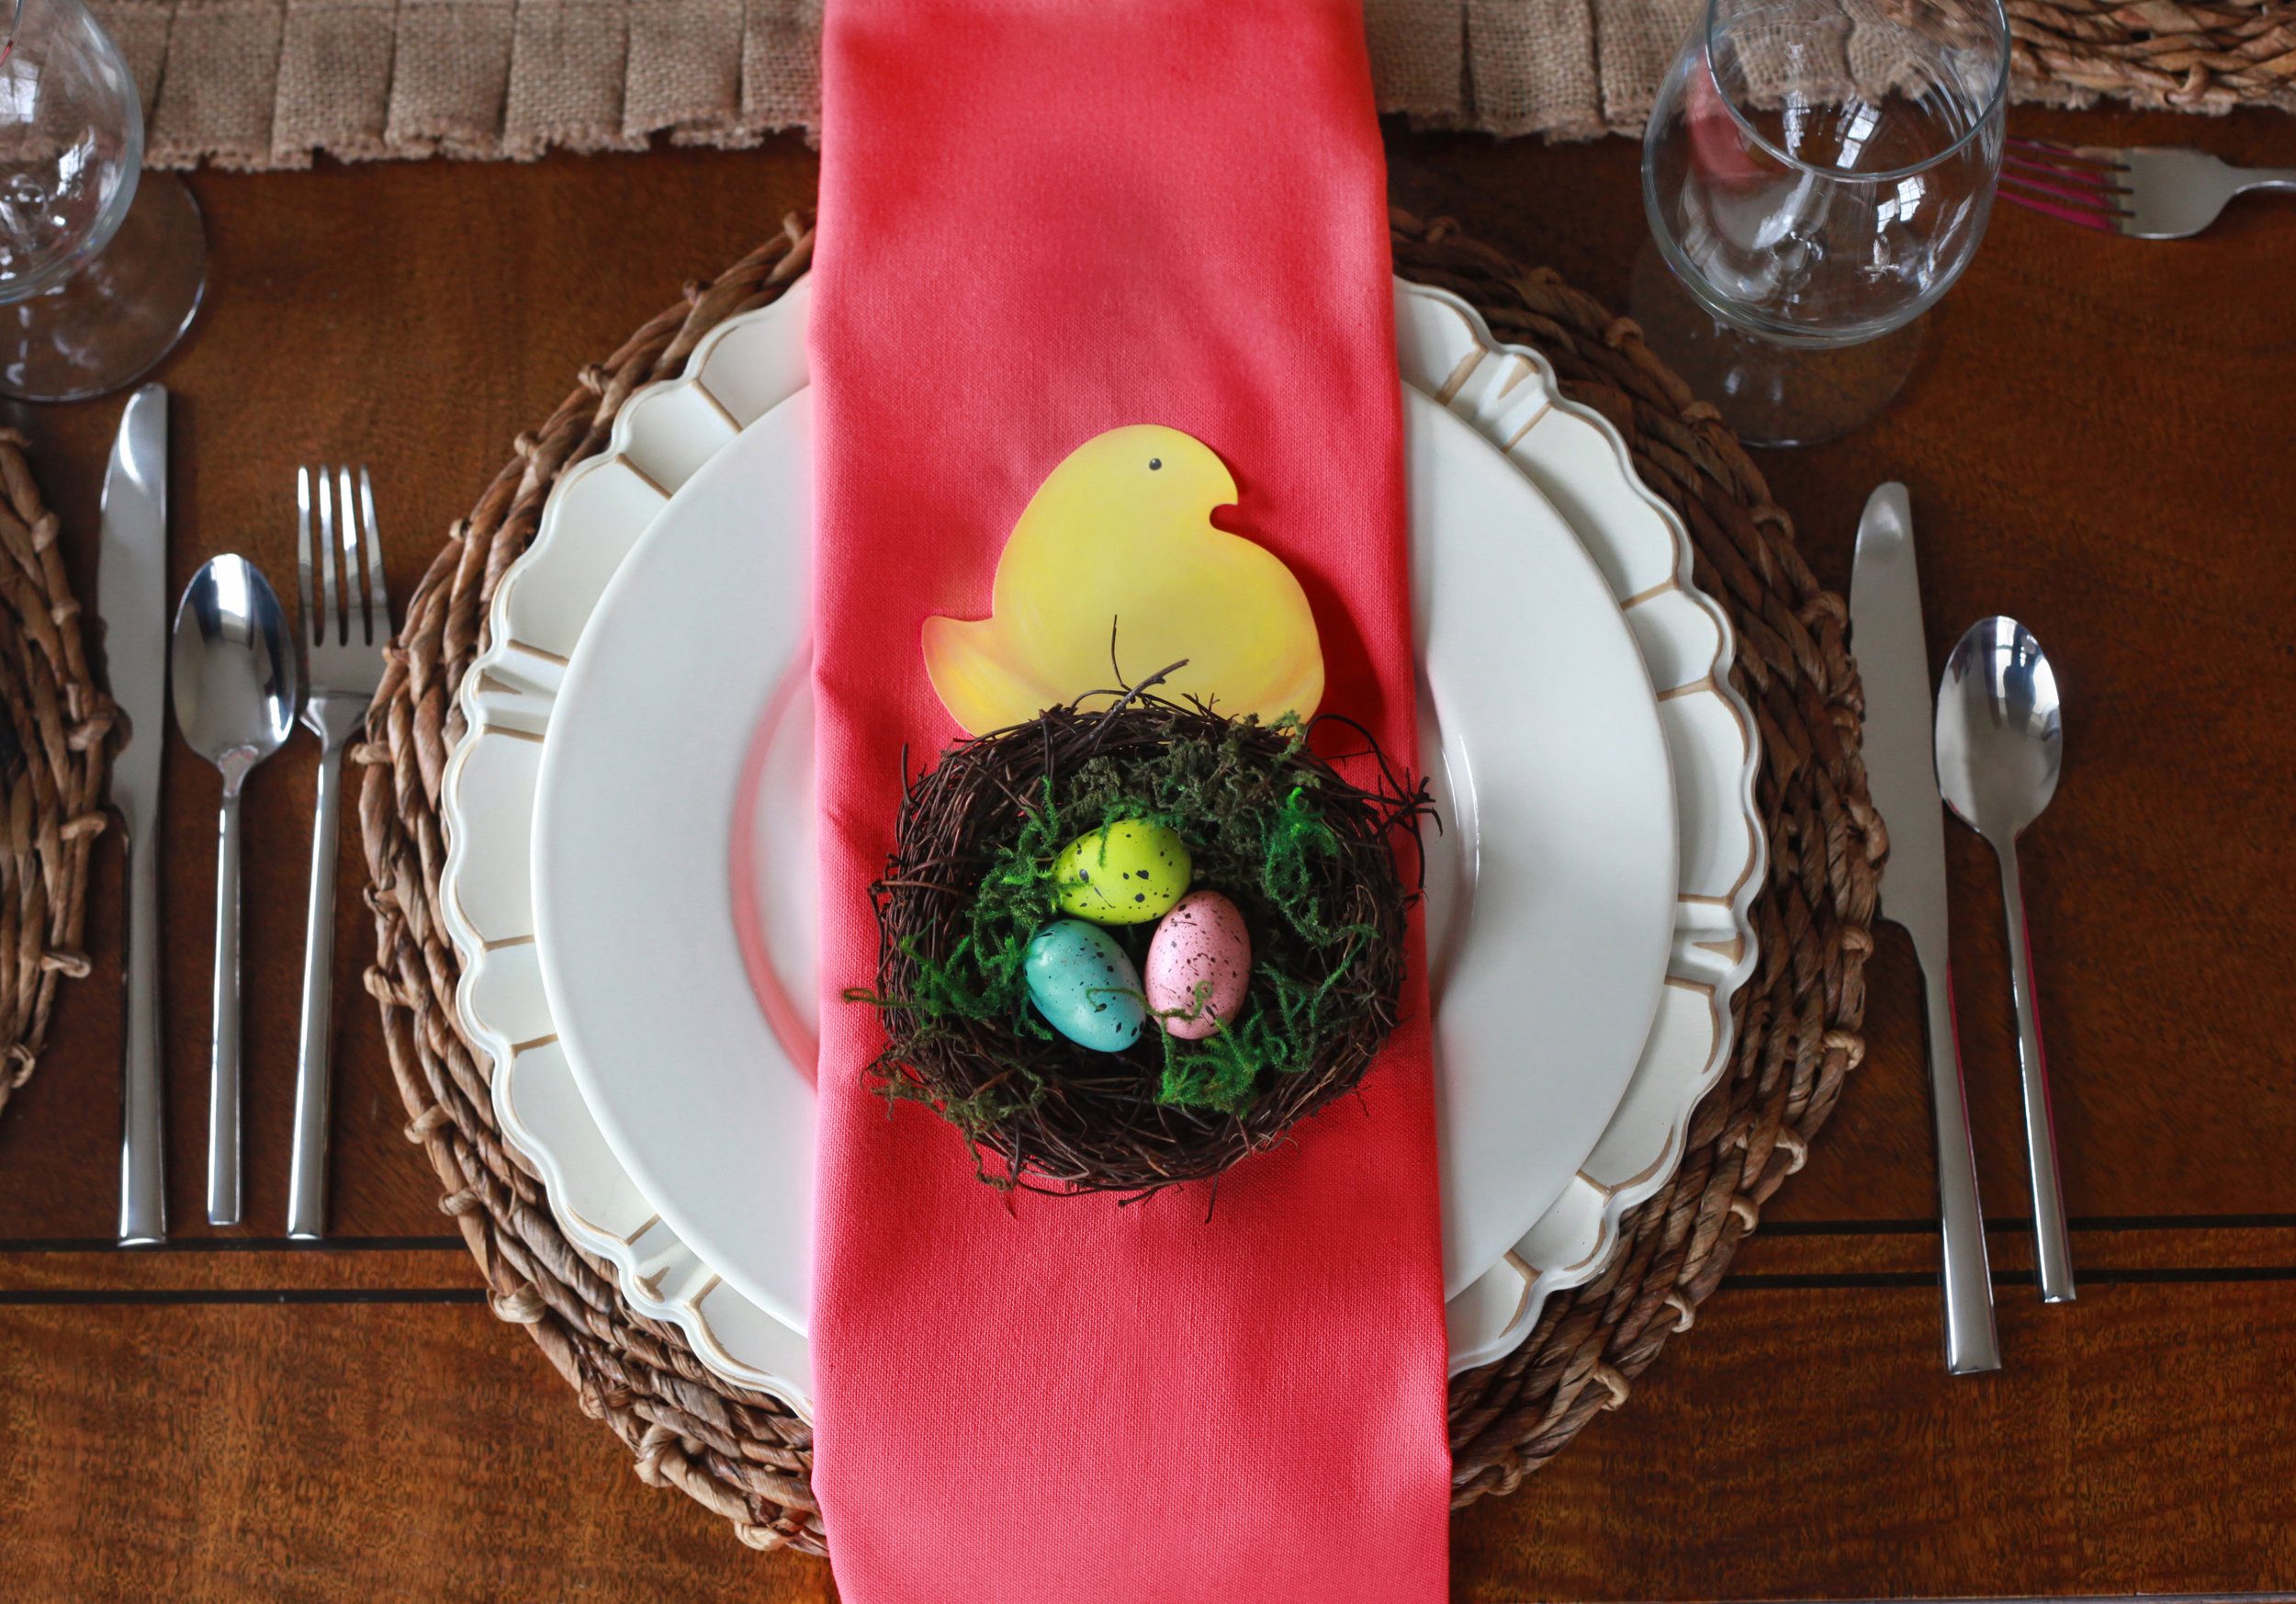 Eggstravaganza - Tablescape Includes:Burlap table runner, rattan charger, gold rimmed charger, plate, solid coral napkin, gold napkin ring, off white enamel plate, Peeps chick place card, nest plate accessory.$14.99 per tablescapeThis charming Easter/spring table is sure to get your party hopping! The vibrant coral colored napkins with gold accents are just enough to make your table shine for spring!